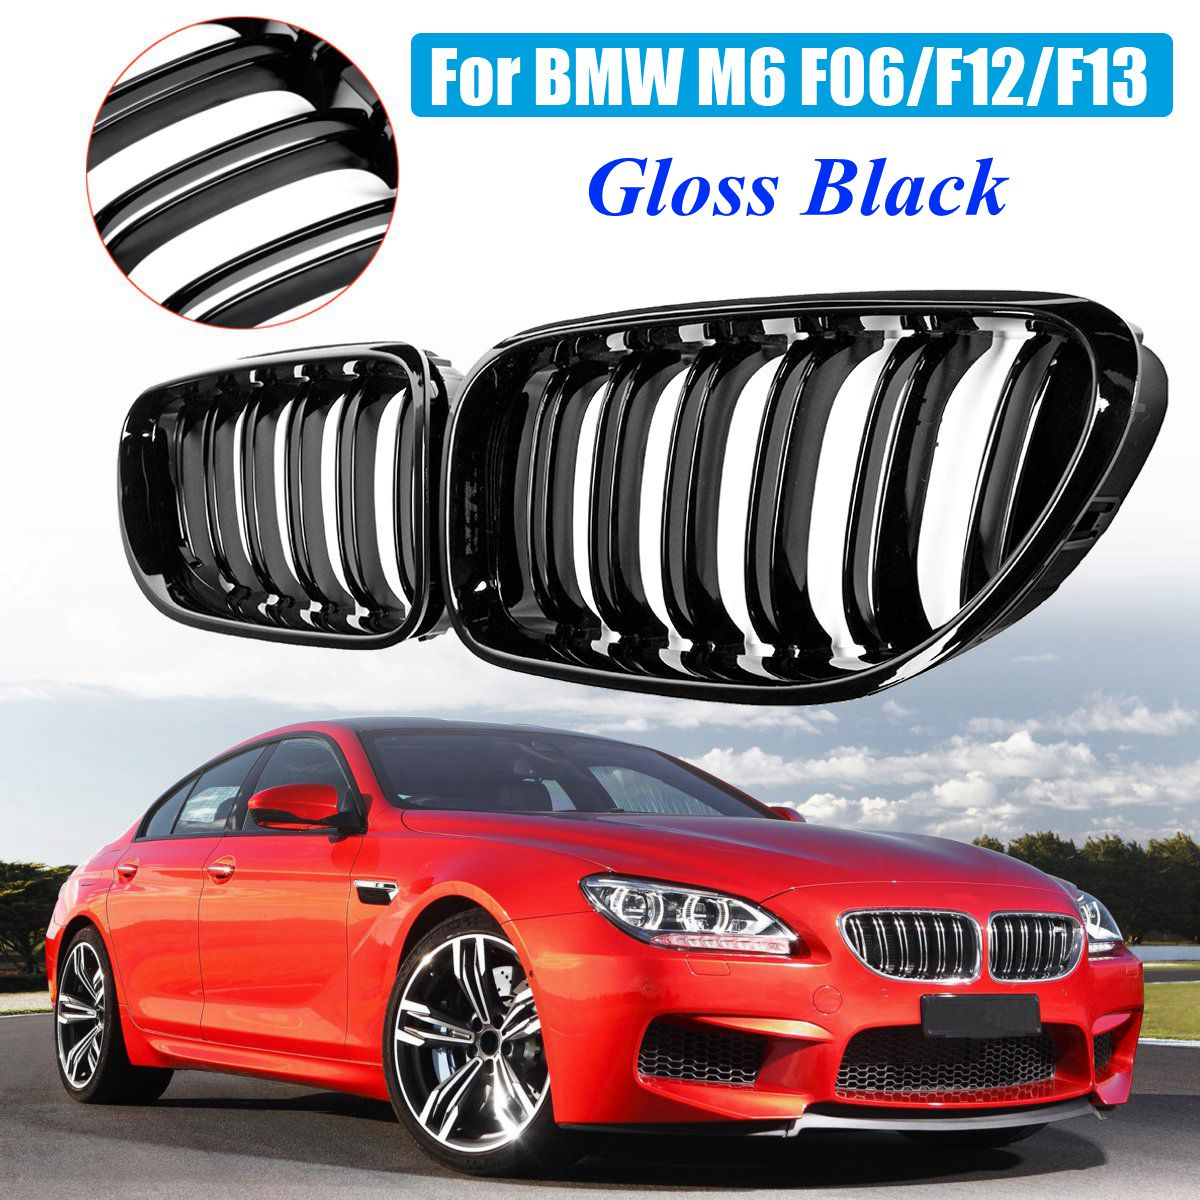 1 Pair Gloss Black Front Kidney Grill Bumper Grill Double Slat Line For BMW M6 640i 650i F06 F12 F13 2012 2013 2014 15 16 20171 Pair Gloss Black Front Kidney Grill Bumper Grill Double Slat Line For BMW M6 640i 650i F06 F12 F13 2012 2013 2014 15 16 2017